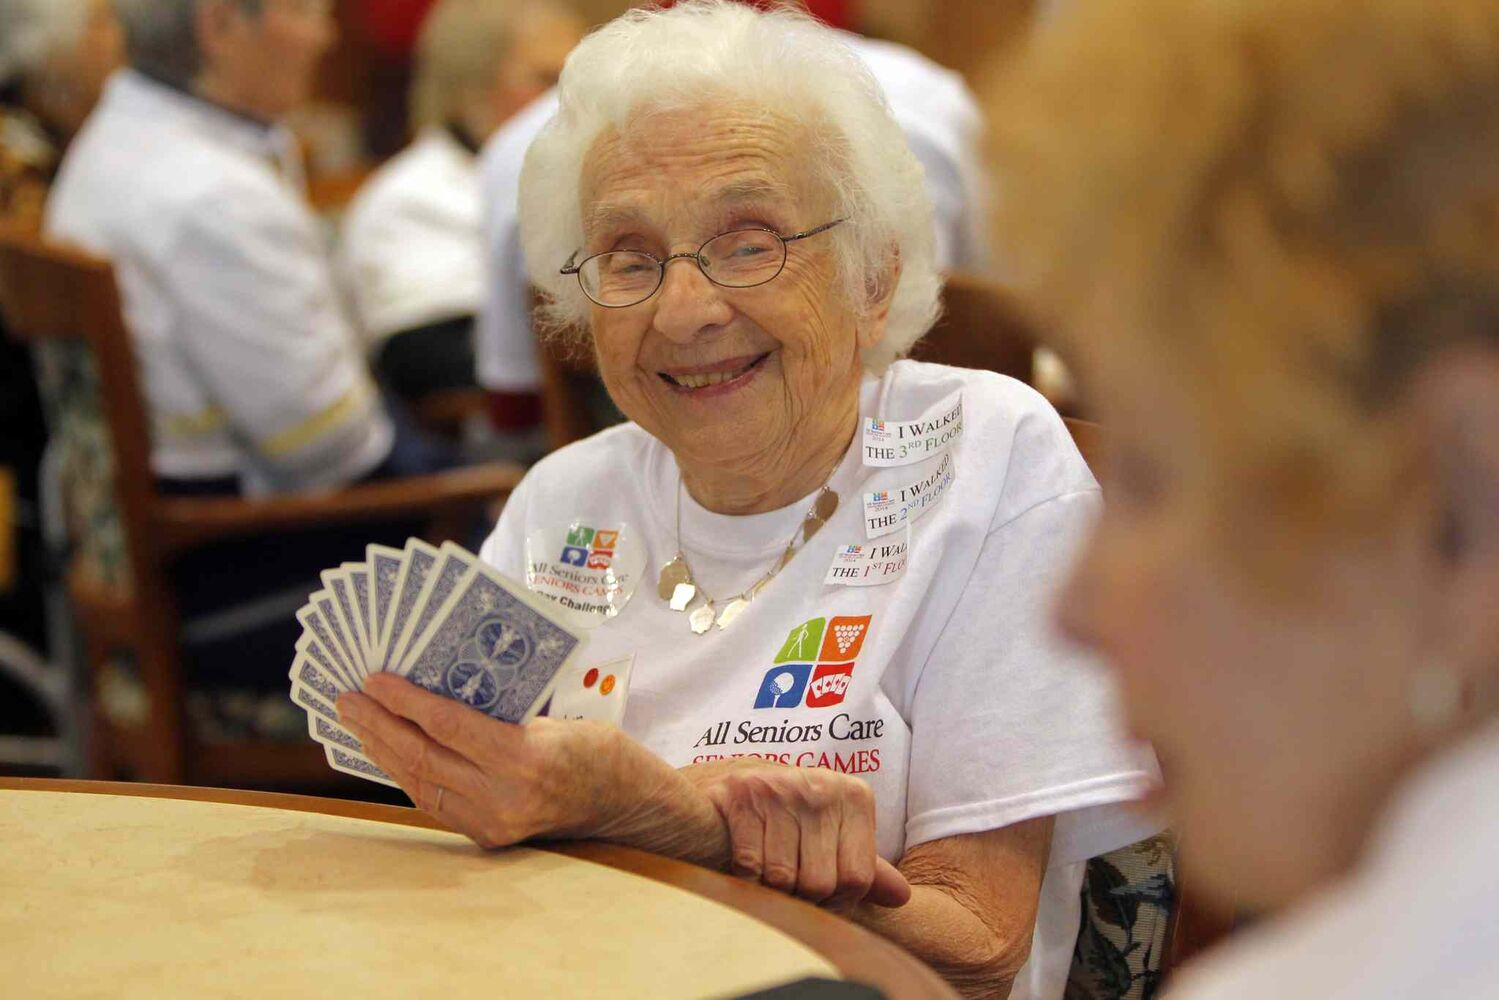 Roslyn Silver smiles as she play bridge during the All Senior Care Senior Games 2014 at Shaftesbury Park Retirement Residence.    (Boris Minkevich / Winnipeg Free Press)